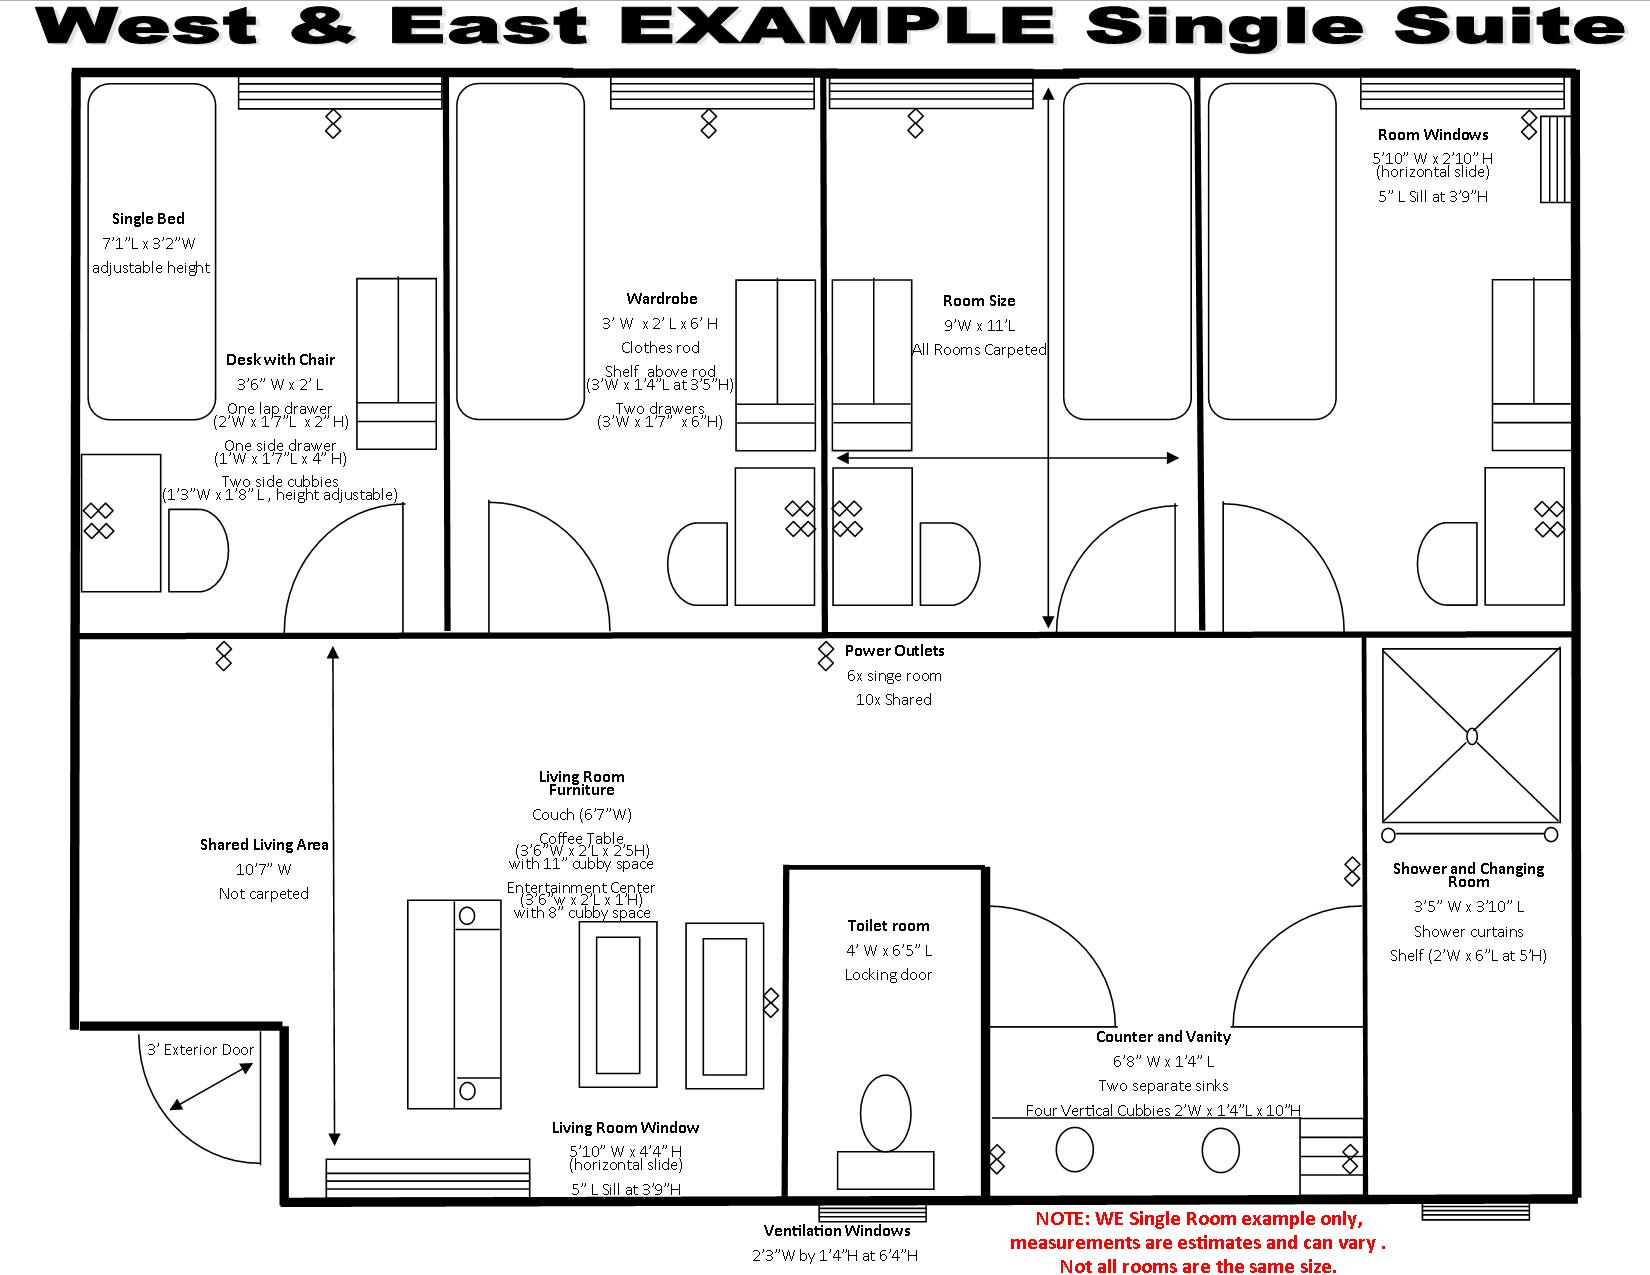 West And East Halls Housing Student Life Pitzer College Desk Schematic We Drafting Single Suite 8615